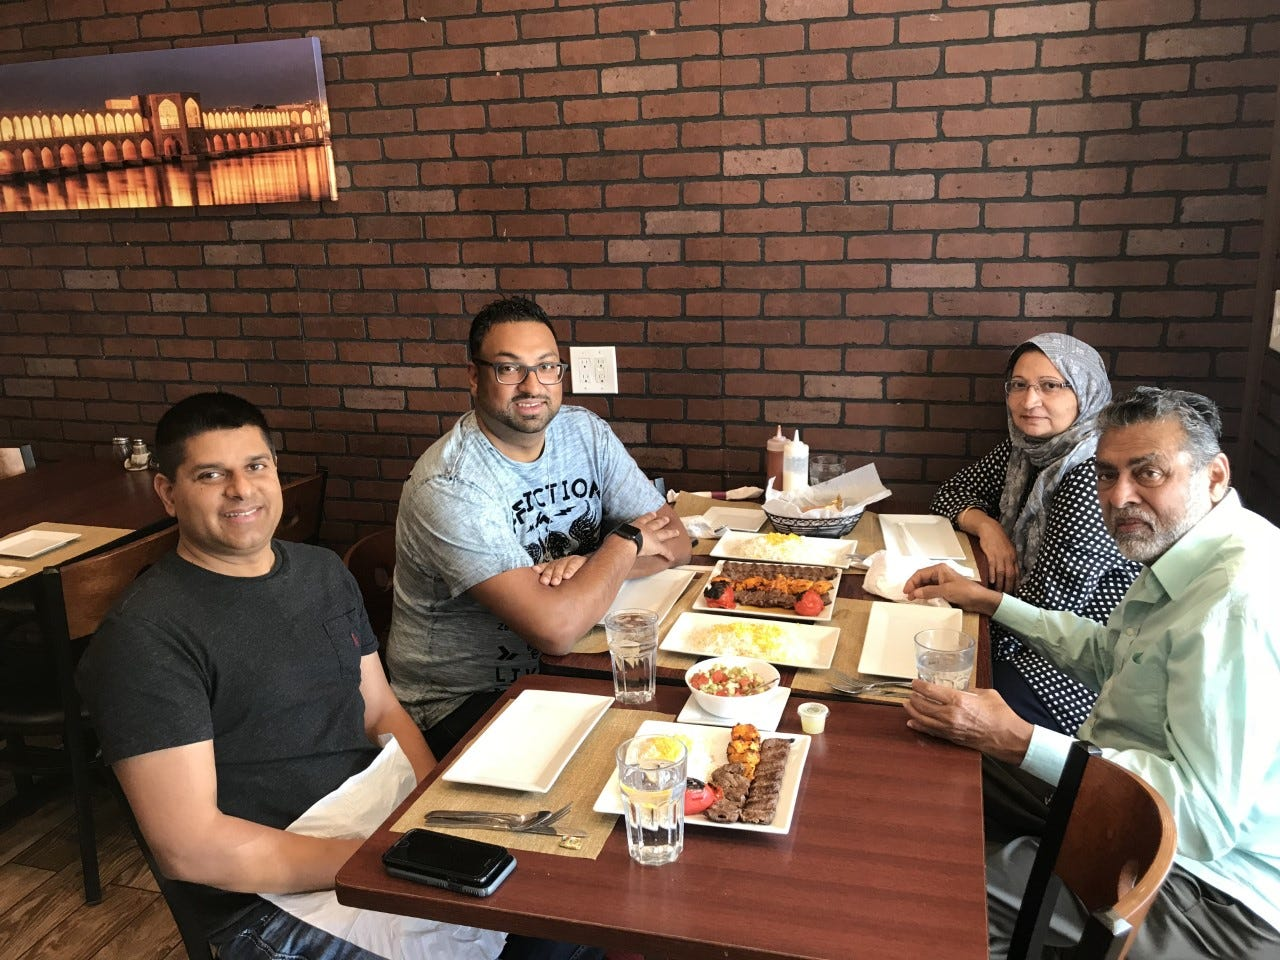 Sameer Sarmast sits with his cousin Sameer Ahmed and his parents, Amina and Syed Sarmast, at their favorite restaurant Kabob on the Cliff in Rutherford, New Jersey.